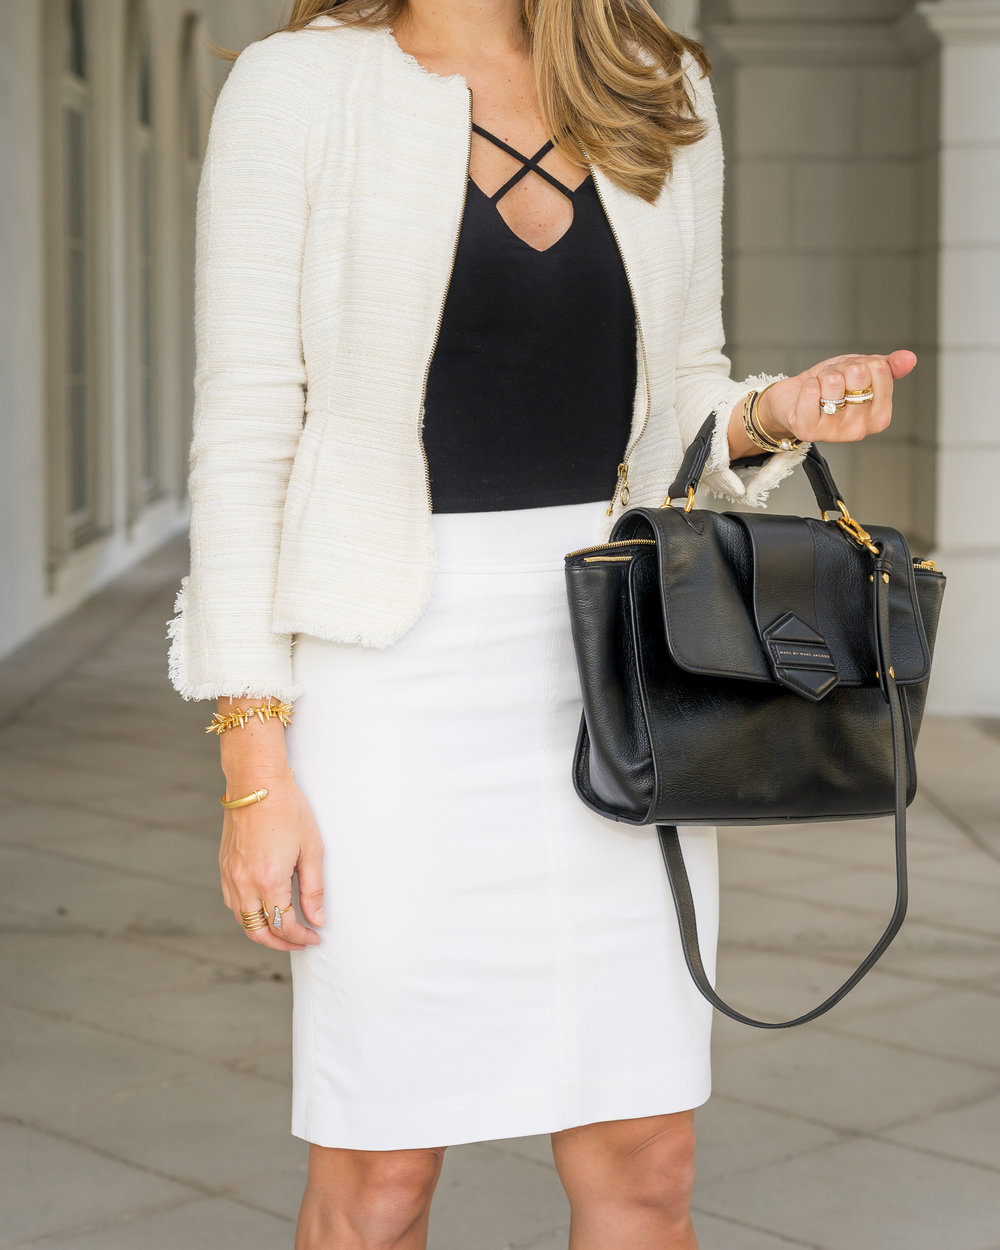 White boucle suit with black criss cross top